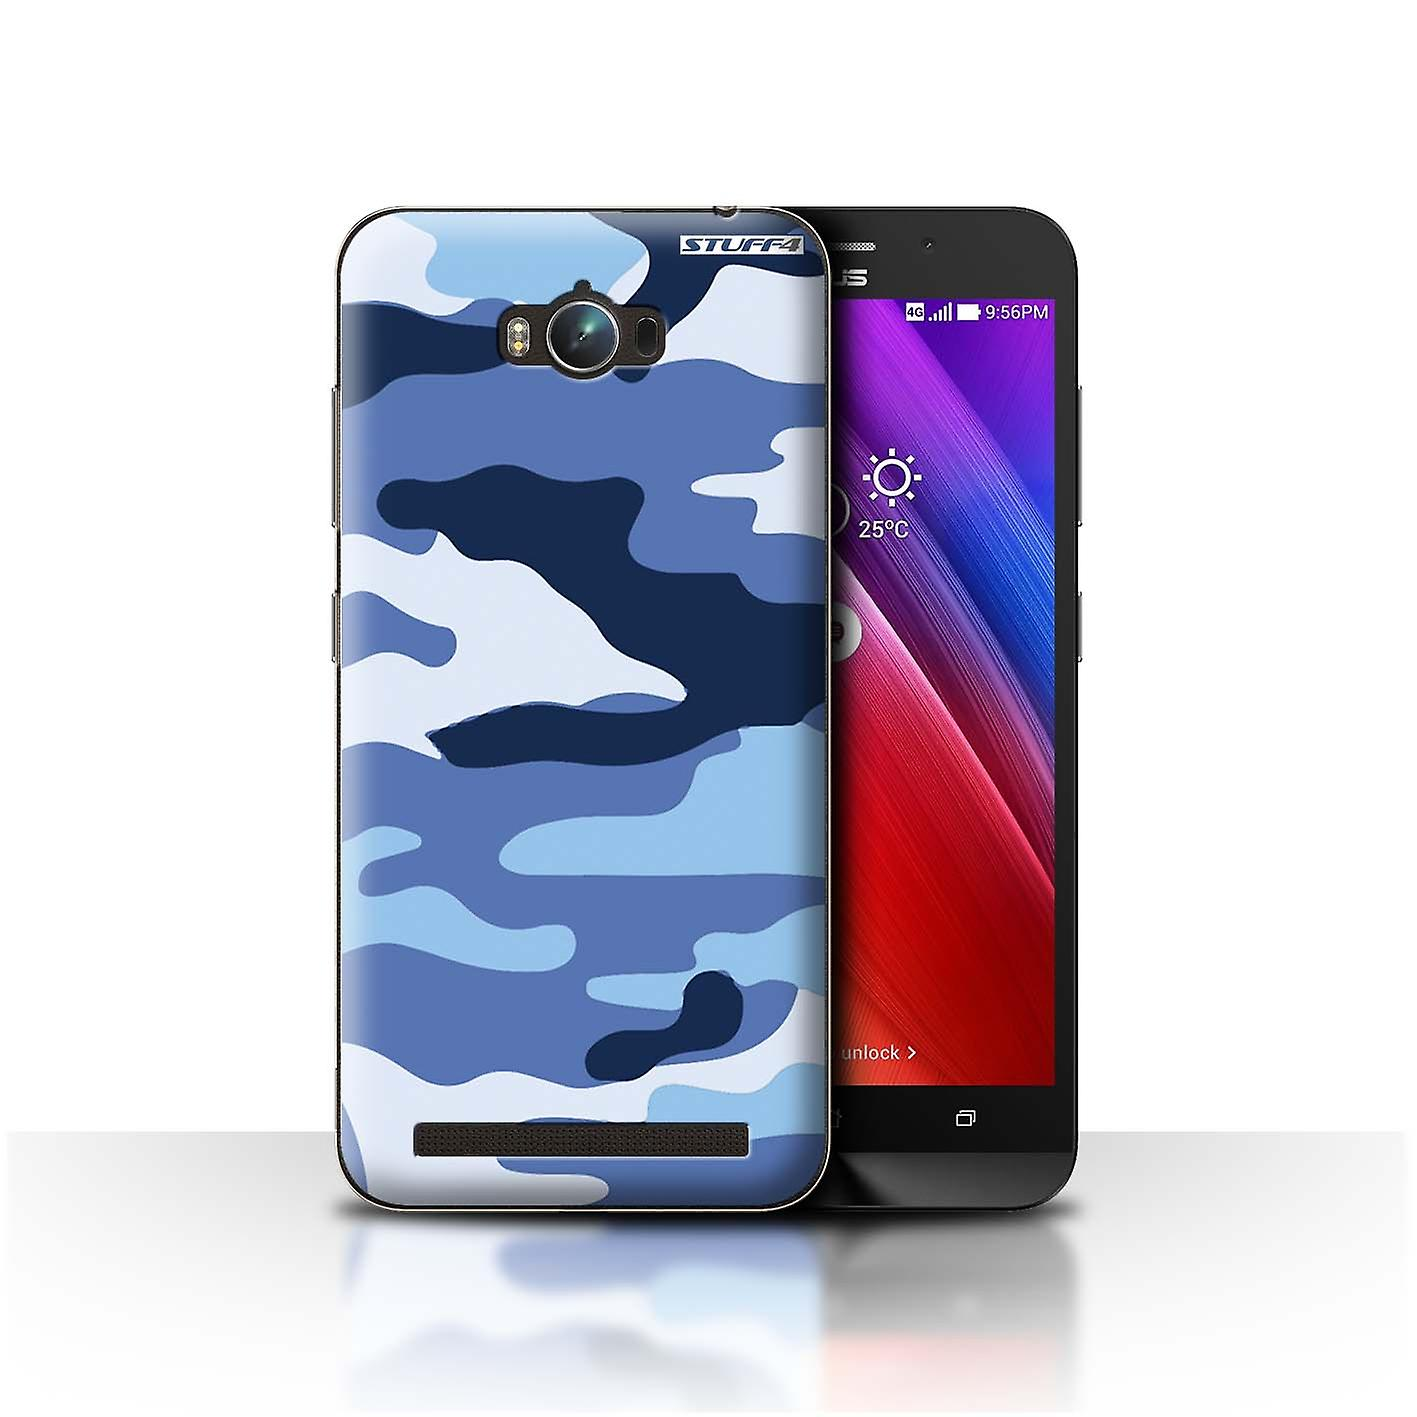 STUFF4 Case/Cover for Asus Zenfone Max ZC550KL/Blue 2/Camouflage Army Navy